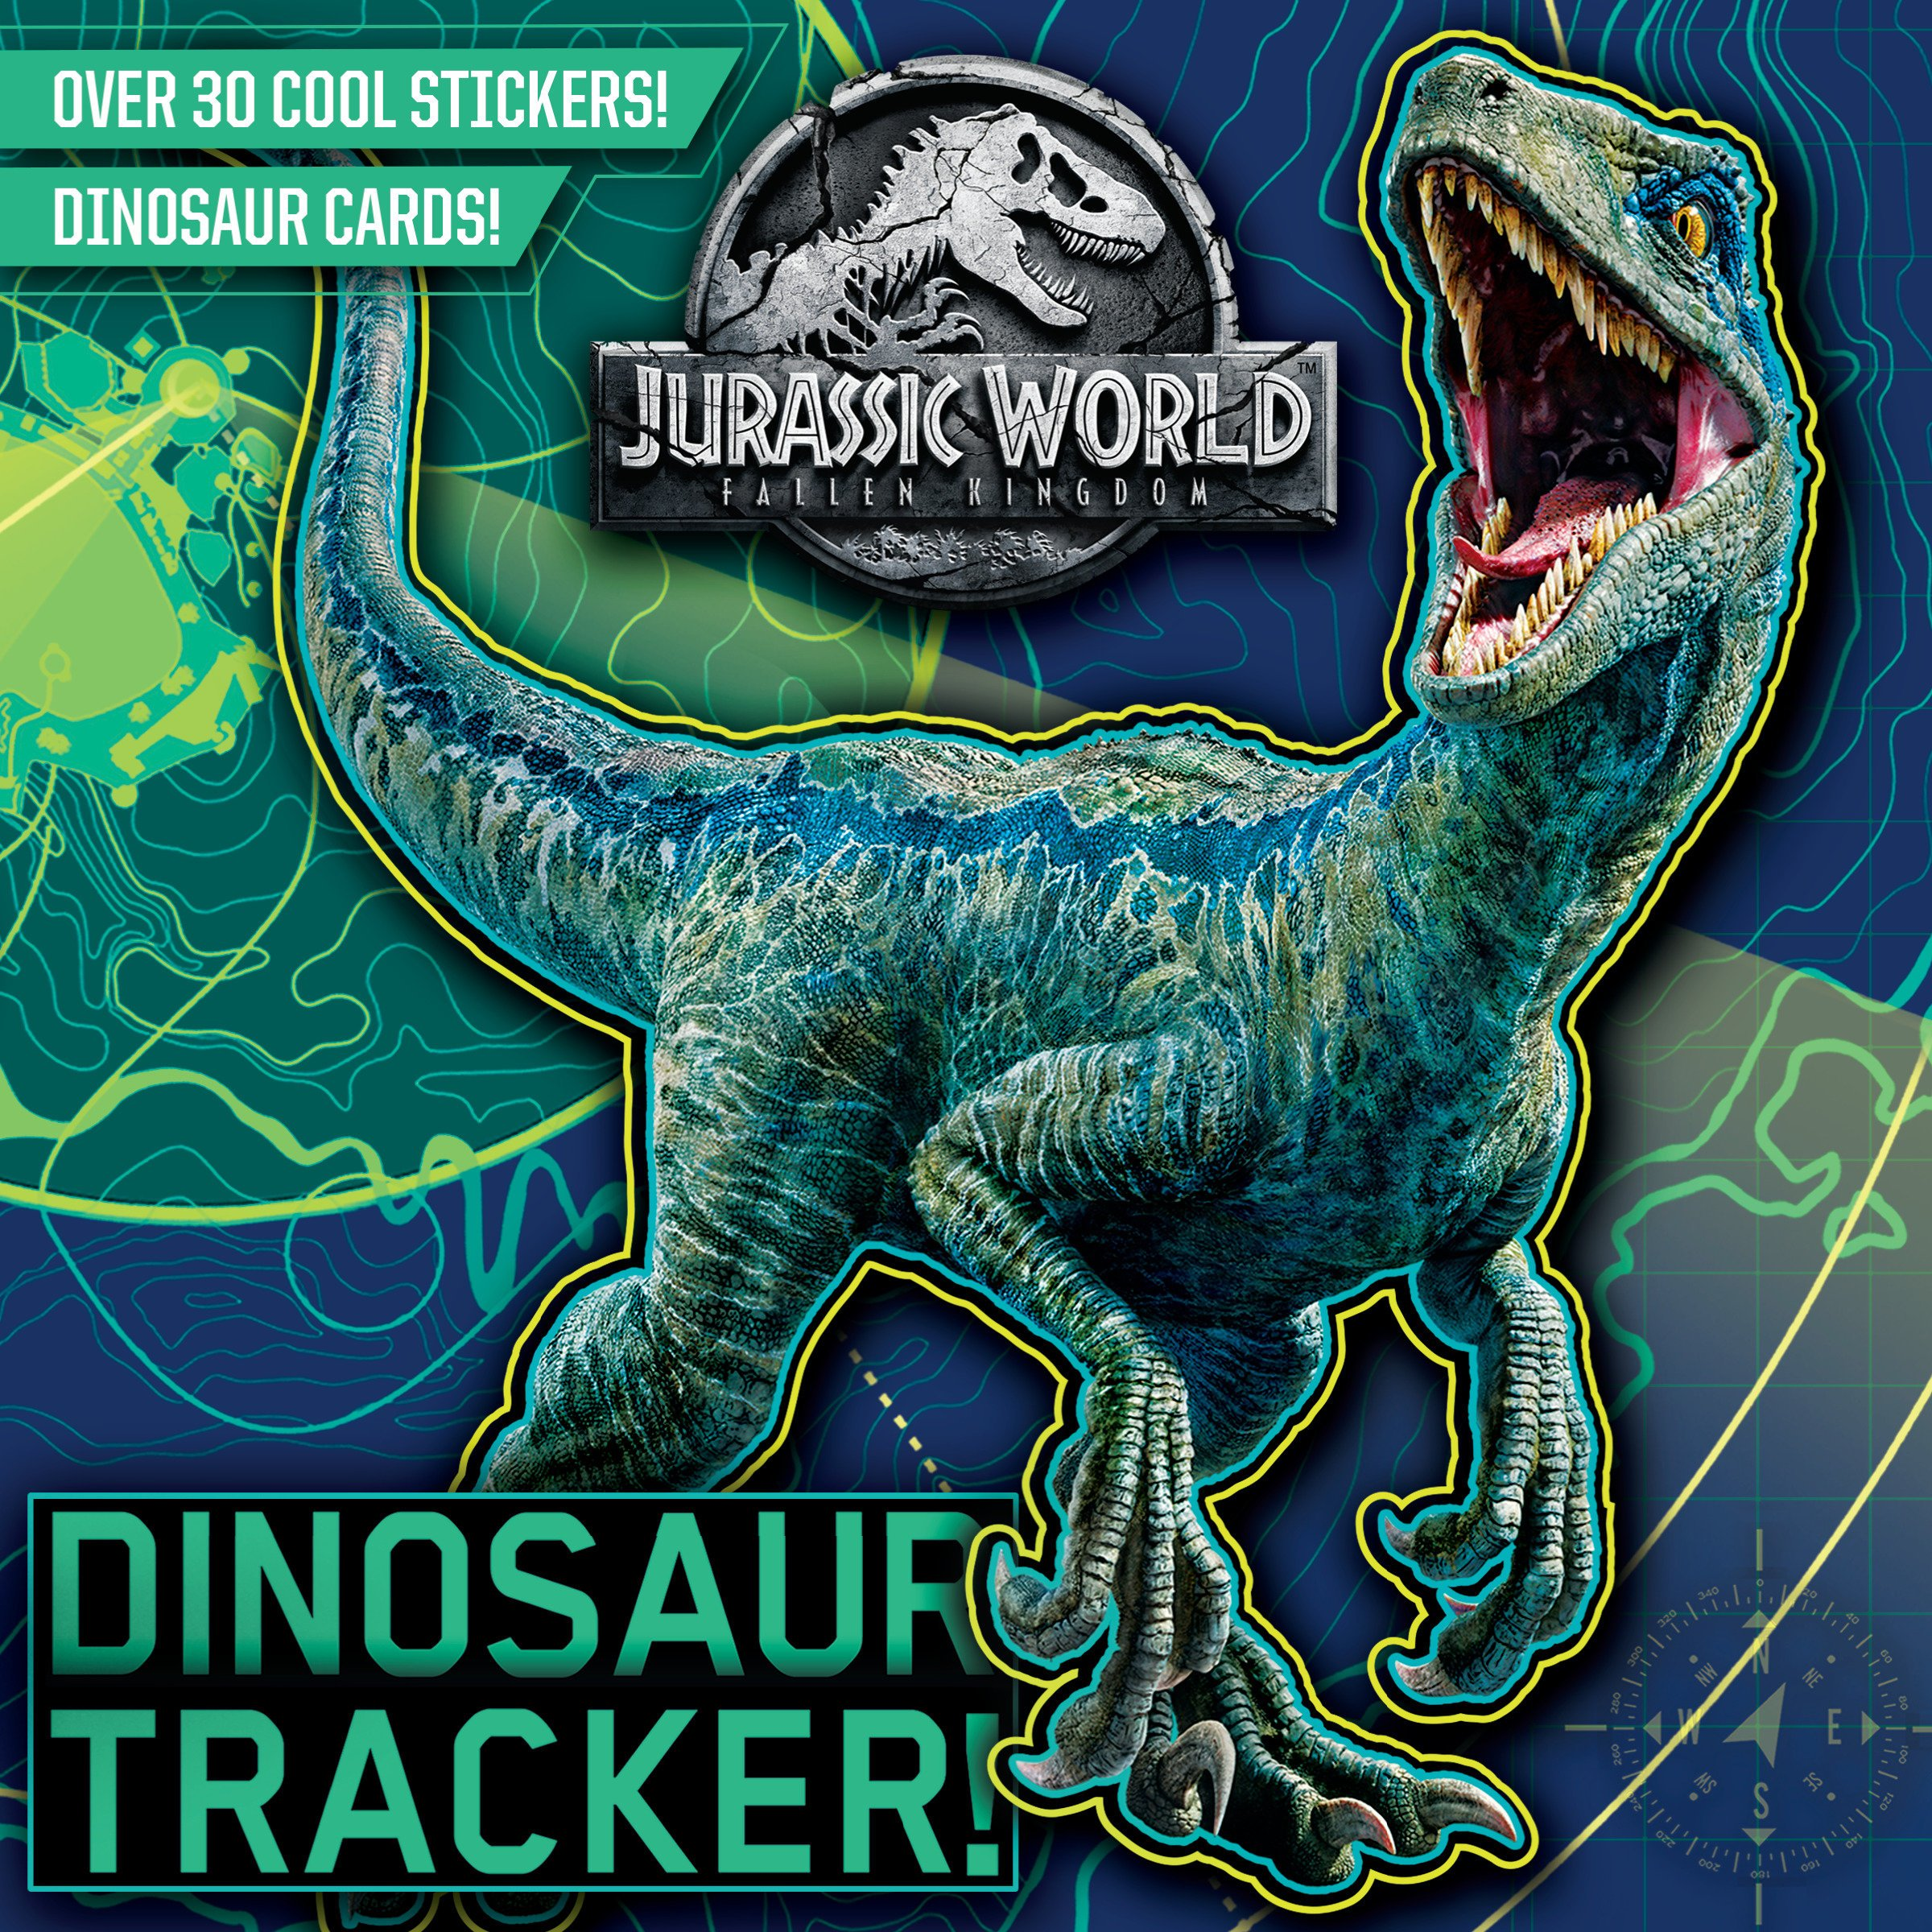 Dinosaur Tracker! (Jurassic World: Fallen Kingdom) (Pictureback(R)): Chlebowski, Rachel, Random House: 9780525580812: Amazon.com: Books